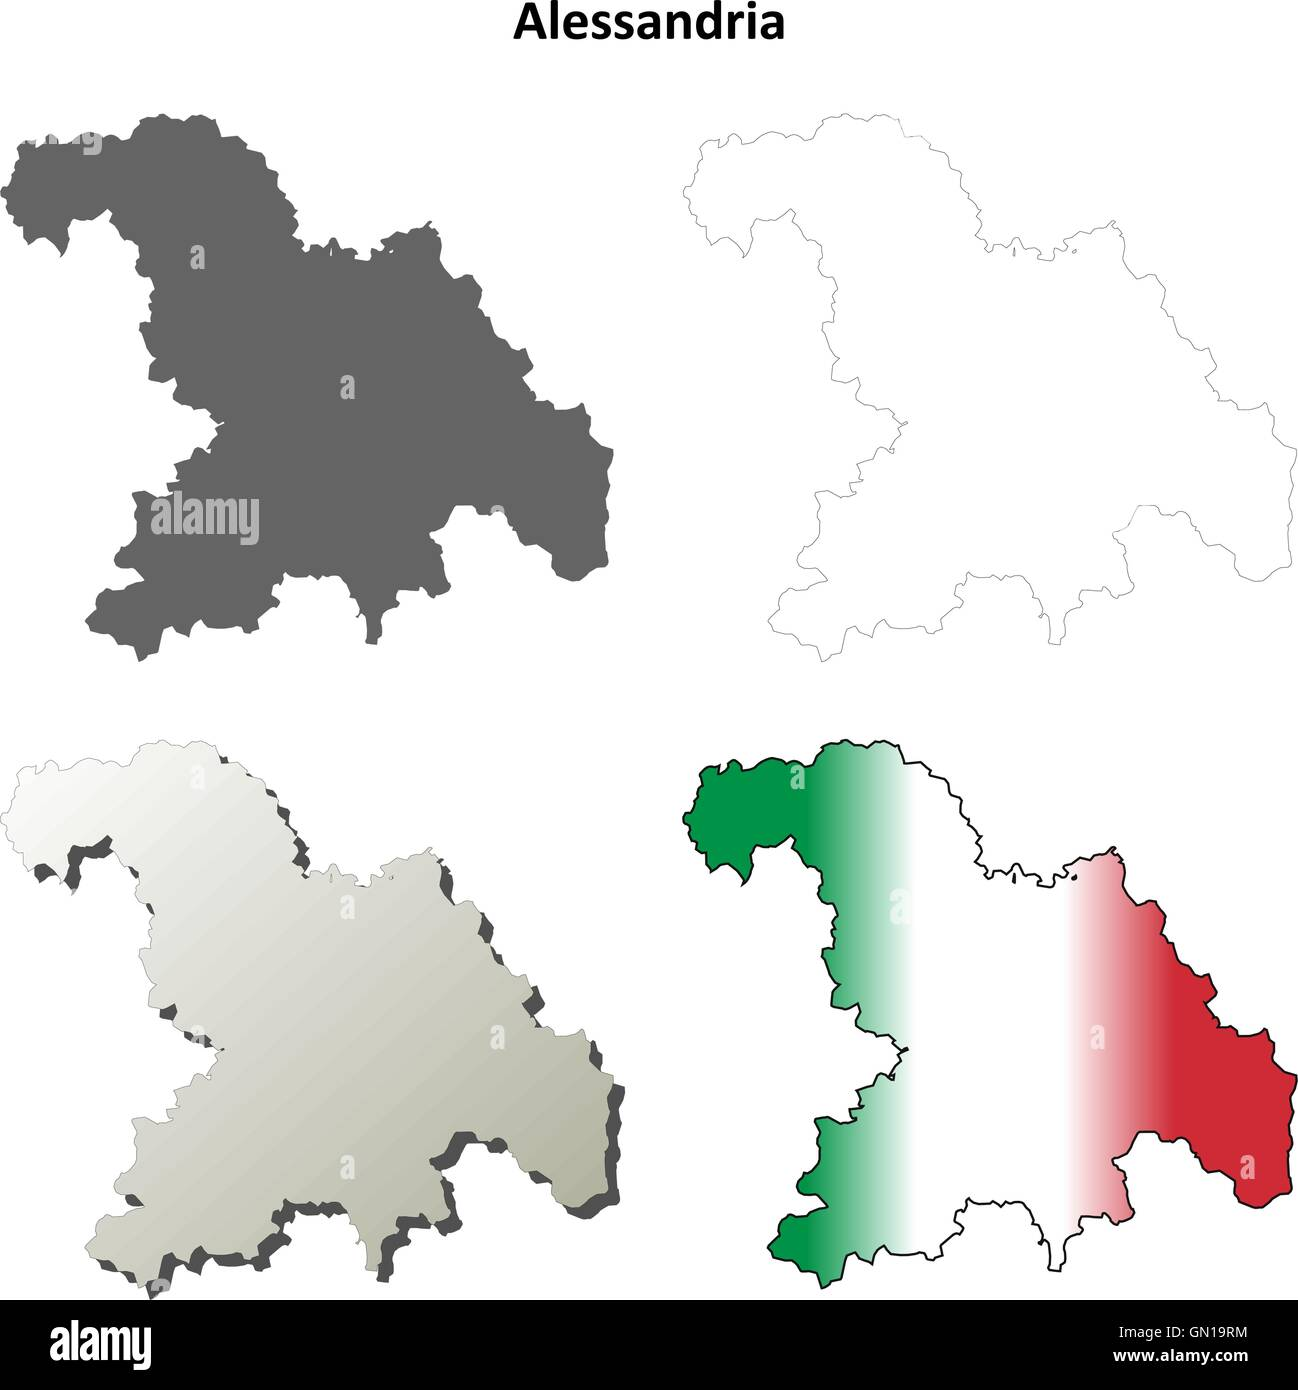 Alessandria Italy Map.Alessandria Italy Stock Vector Images Alamy